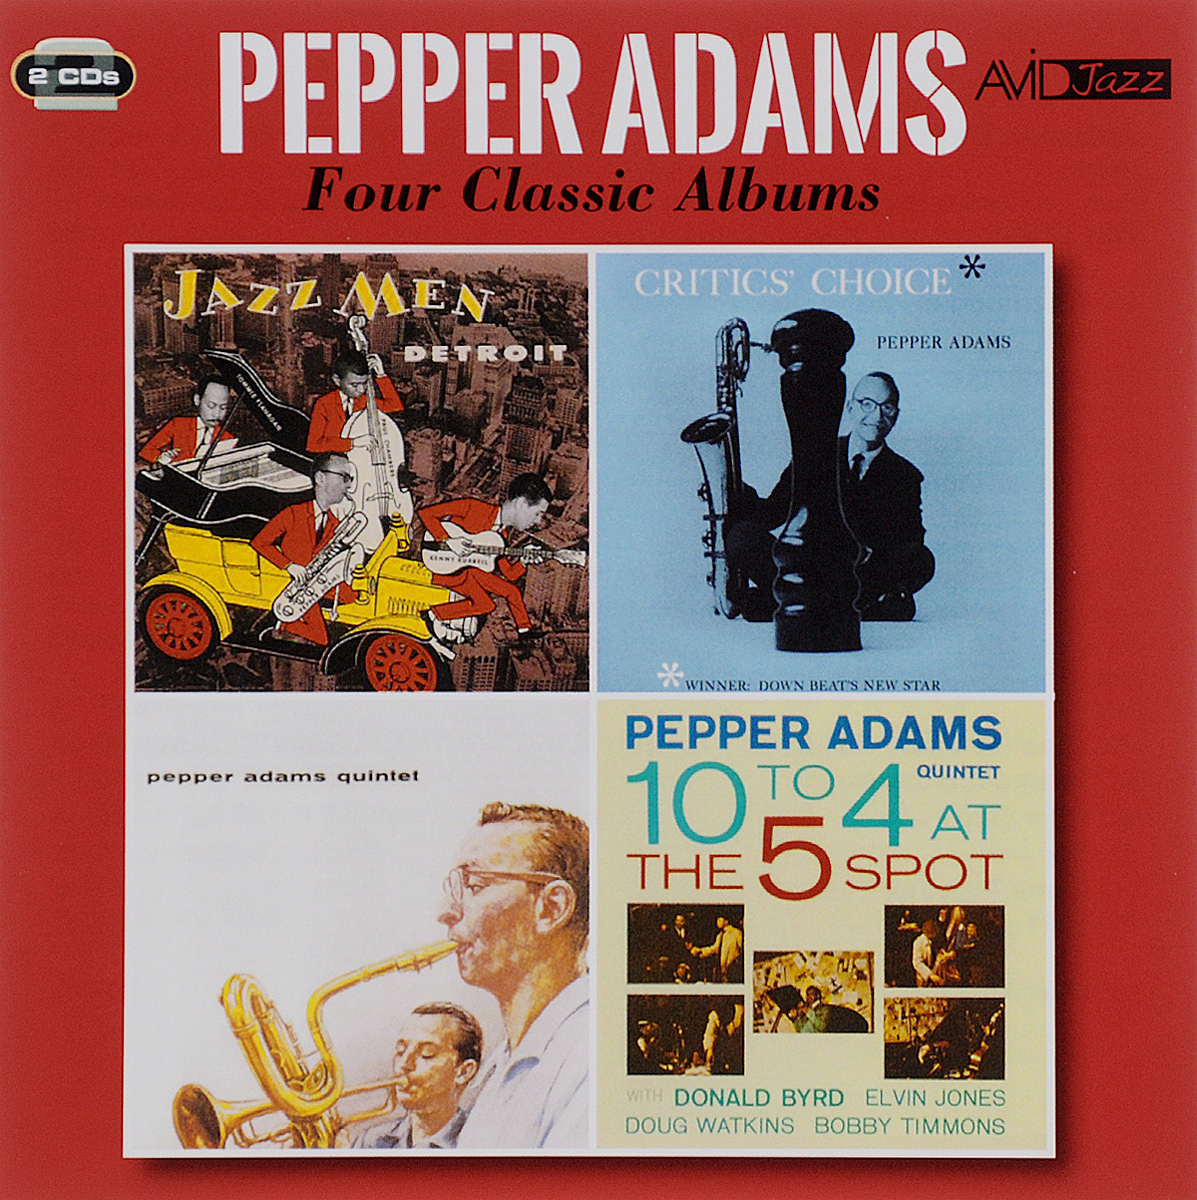 Пеппер Адамс Avid Jazz. Pepper Adams. Four Classic Albums (2 CD) велосипедные тормоза sram avid sram 1 e1 db1 sram avid elixir 1 e1